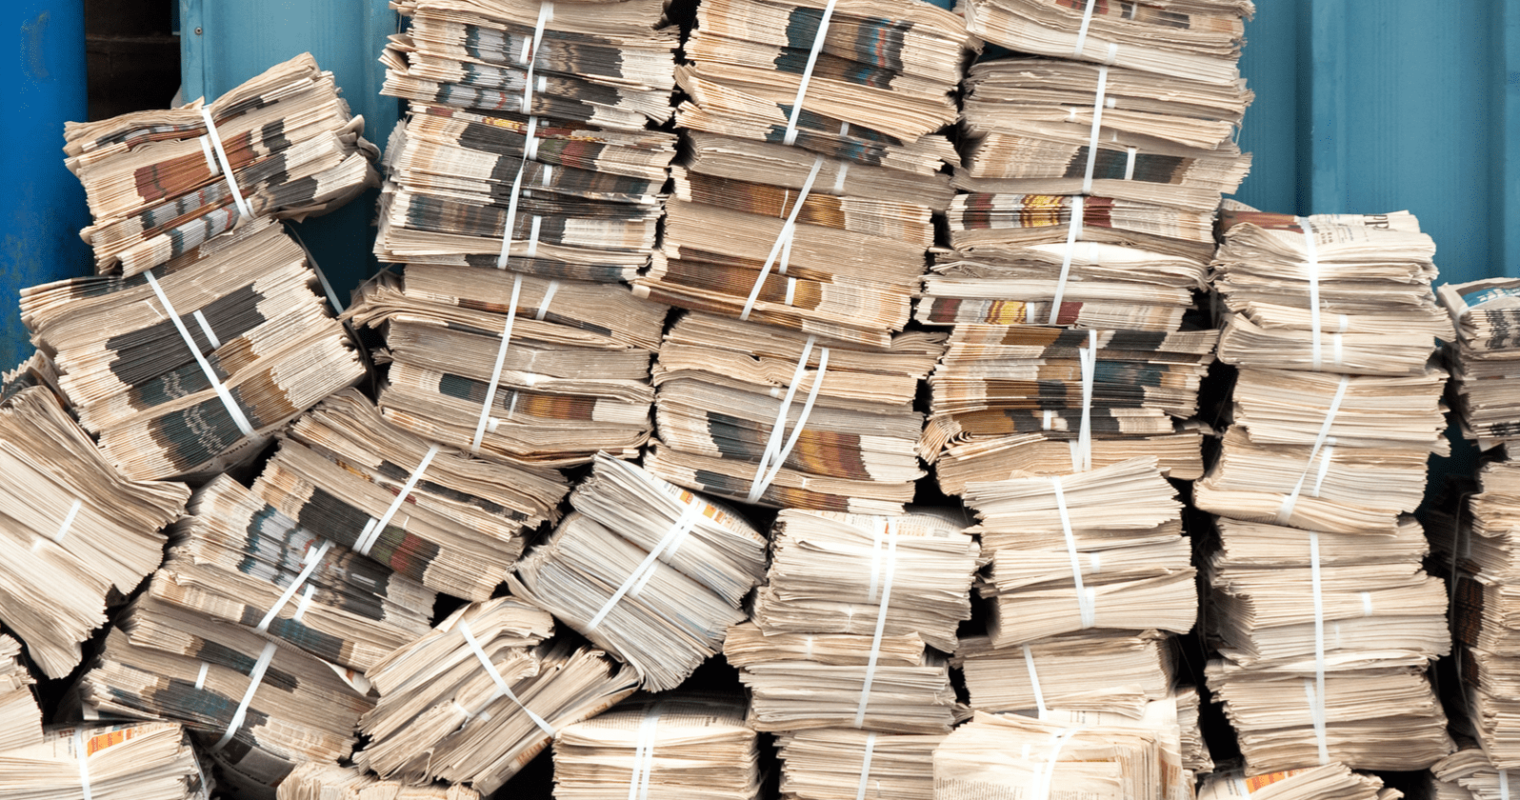 5 Reasons You Should Remove Outdated Content (And One Reason You Shouldn't)